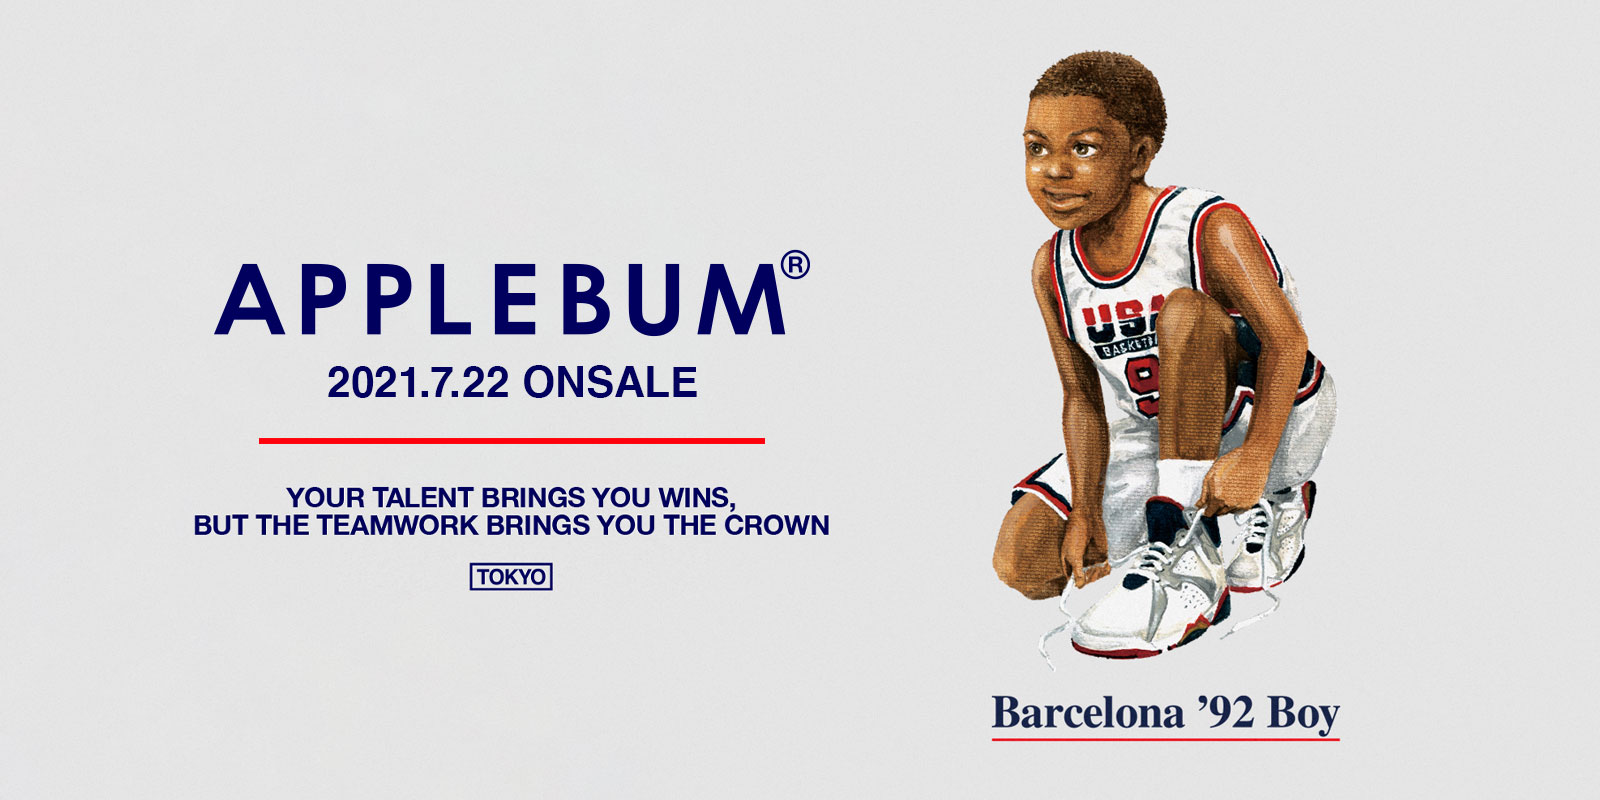 APPLEBUM LIMITED